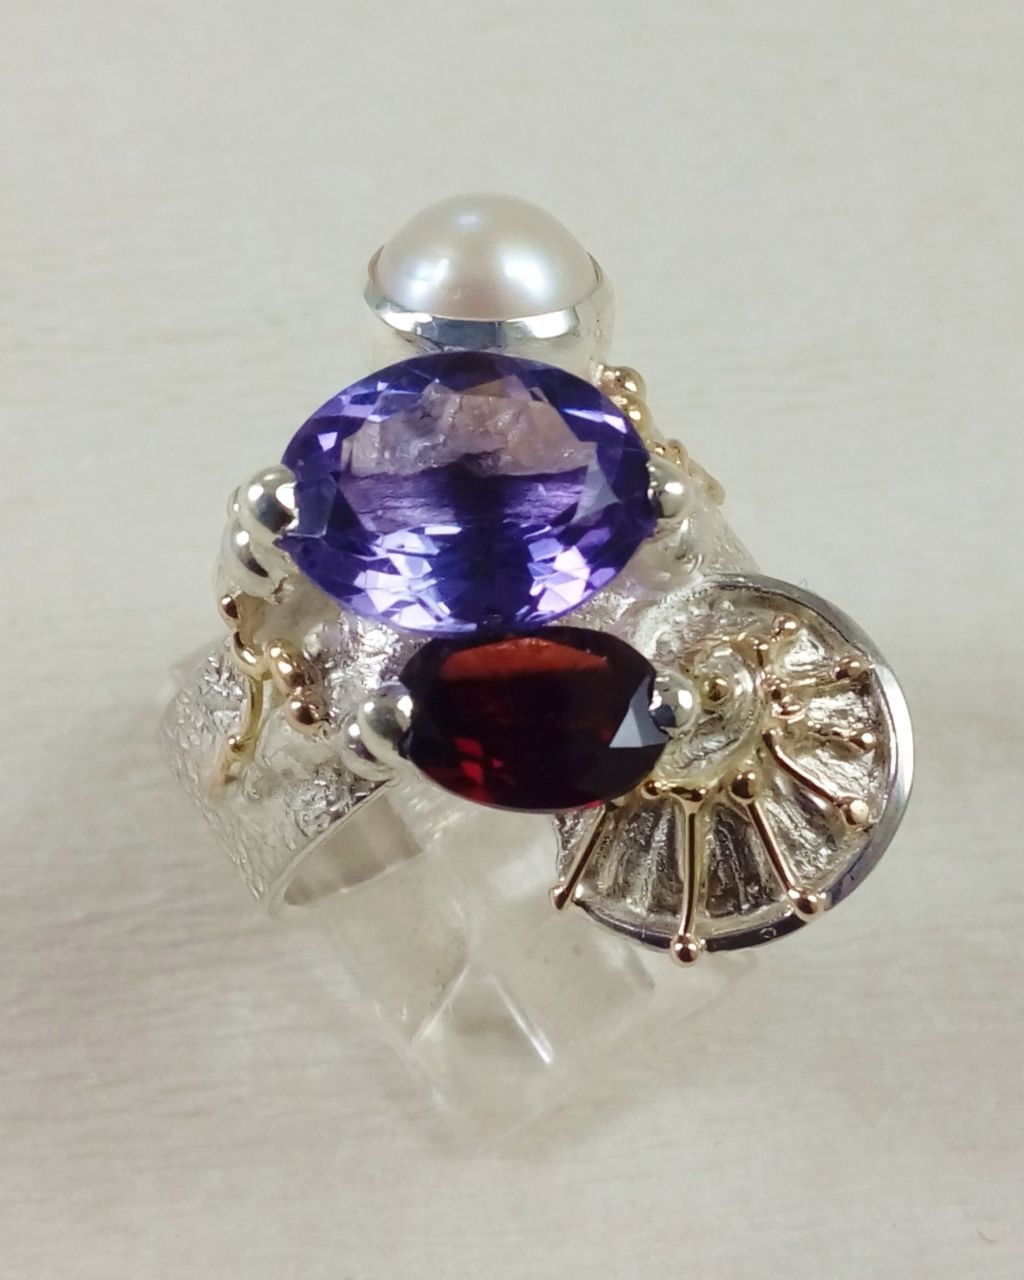 Gregory Pyra Piro ring 3035, Gregory Pyra Piro art jewellery, one of a kind jewellery with amethyst and garnet, handcrafted jewellery with gemstones and pearls, handcrafted jewellery sold in art and craft galleries, mixed metal jewellery with gemstones and pearls, artists during lockdown, jewellery makers during lockdown, rings made during lockdown